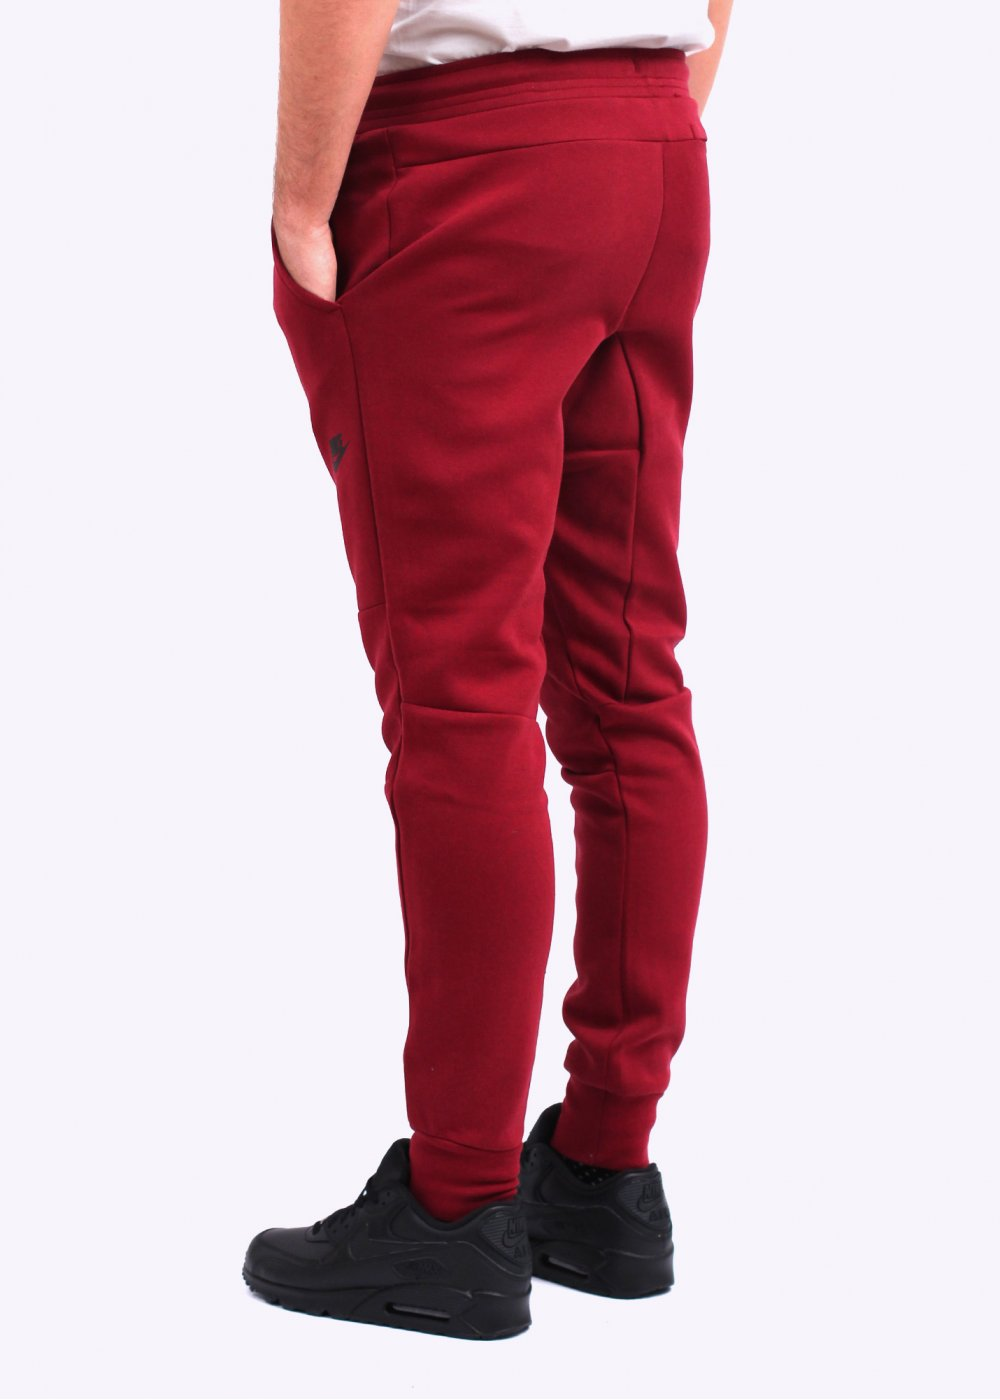 nike tech fleece pant burgundy. Black Bedroom Furniture Sets. Home Design Ideas